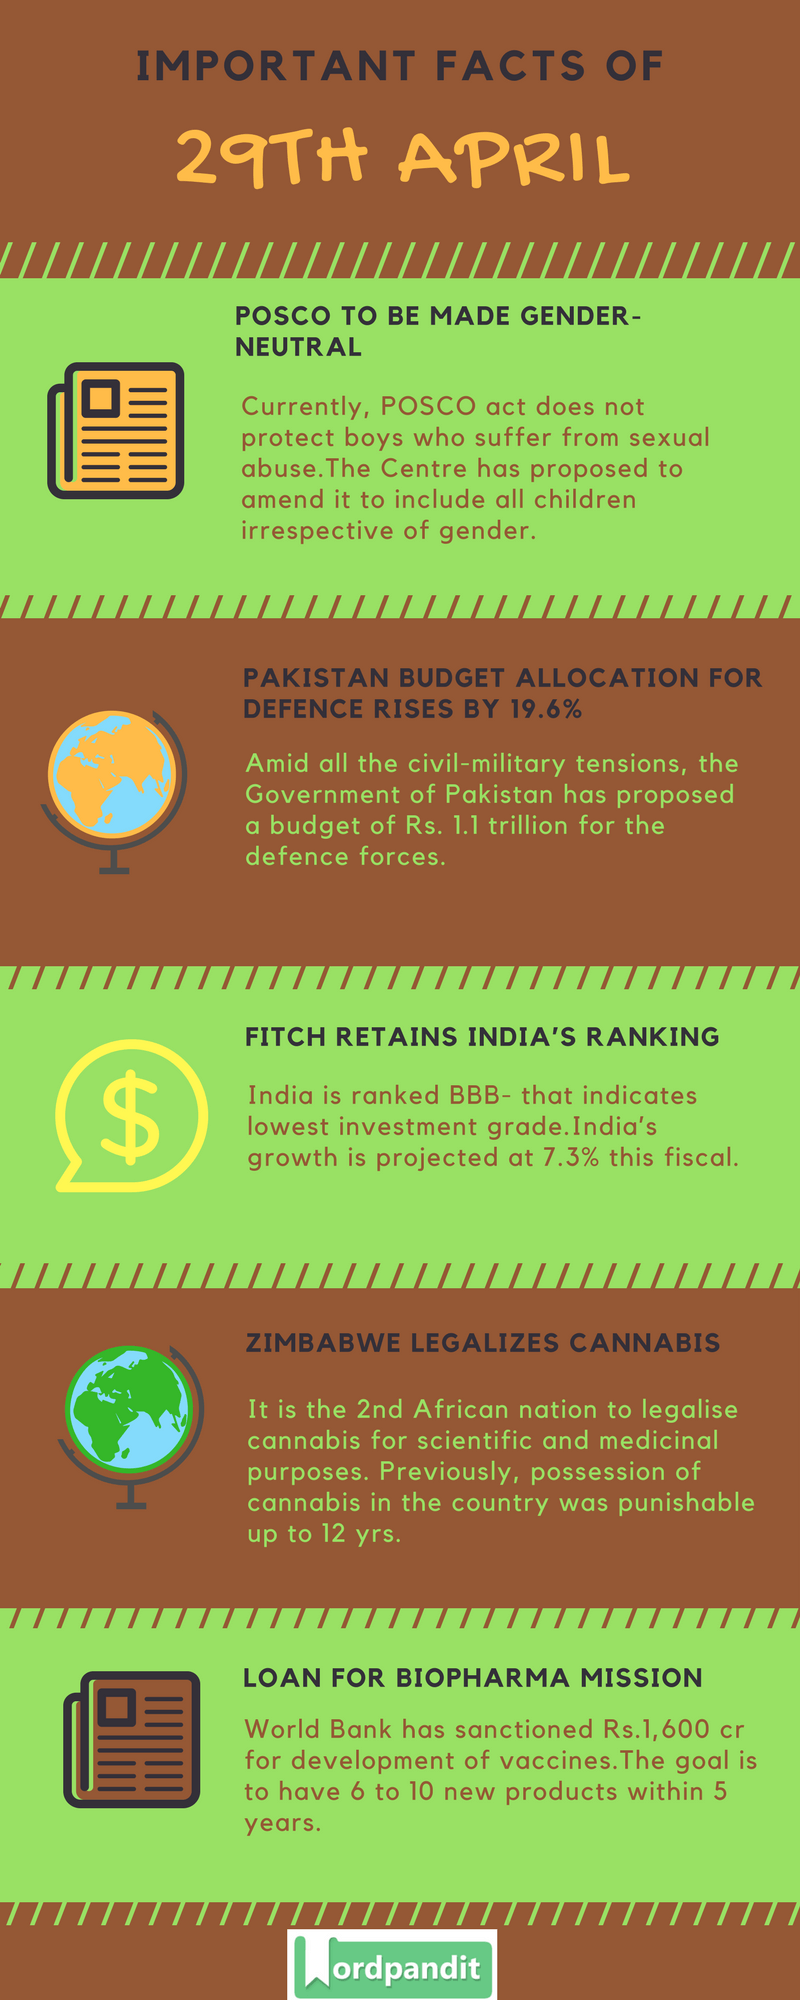 Daily Current Affairs 29 April 2018 Current Affairs Quiz April 29 2018 Current Affairs Infographic